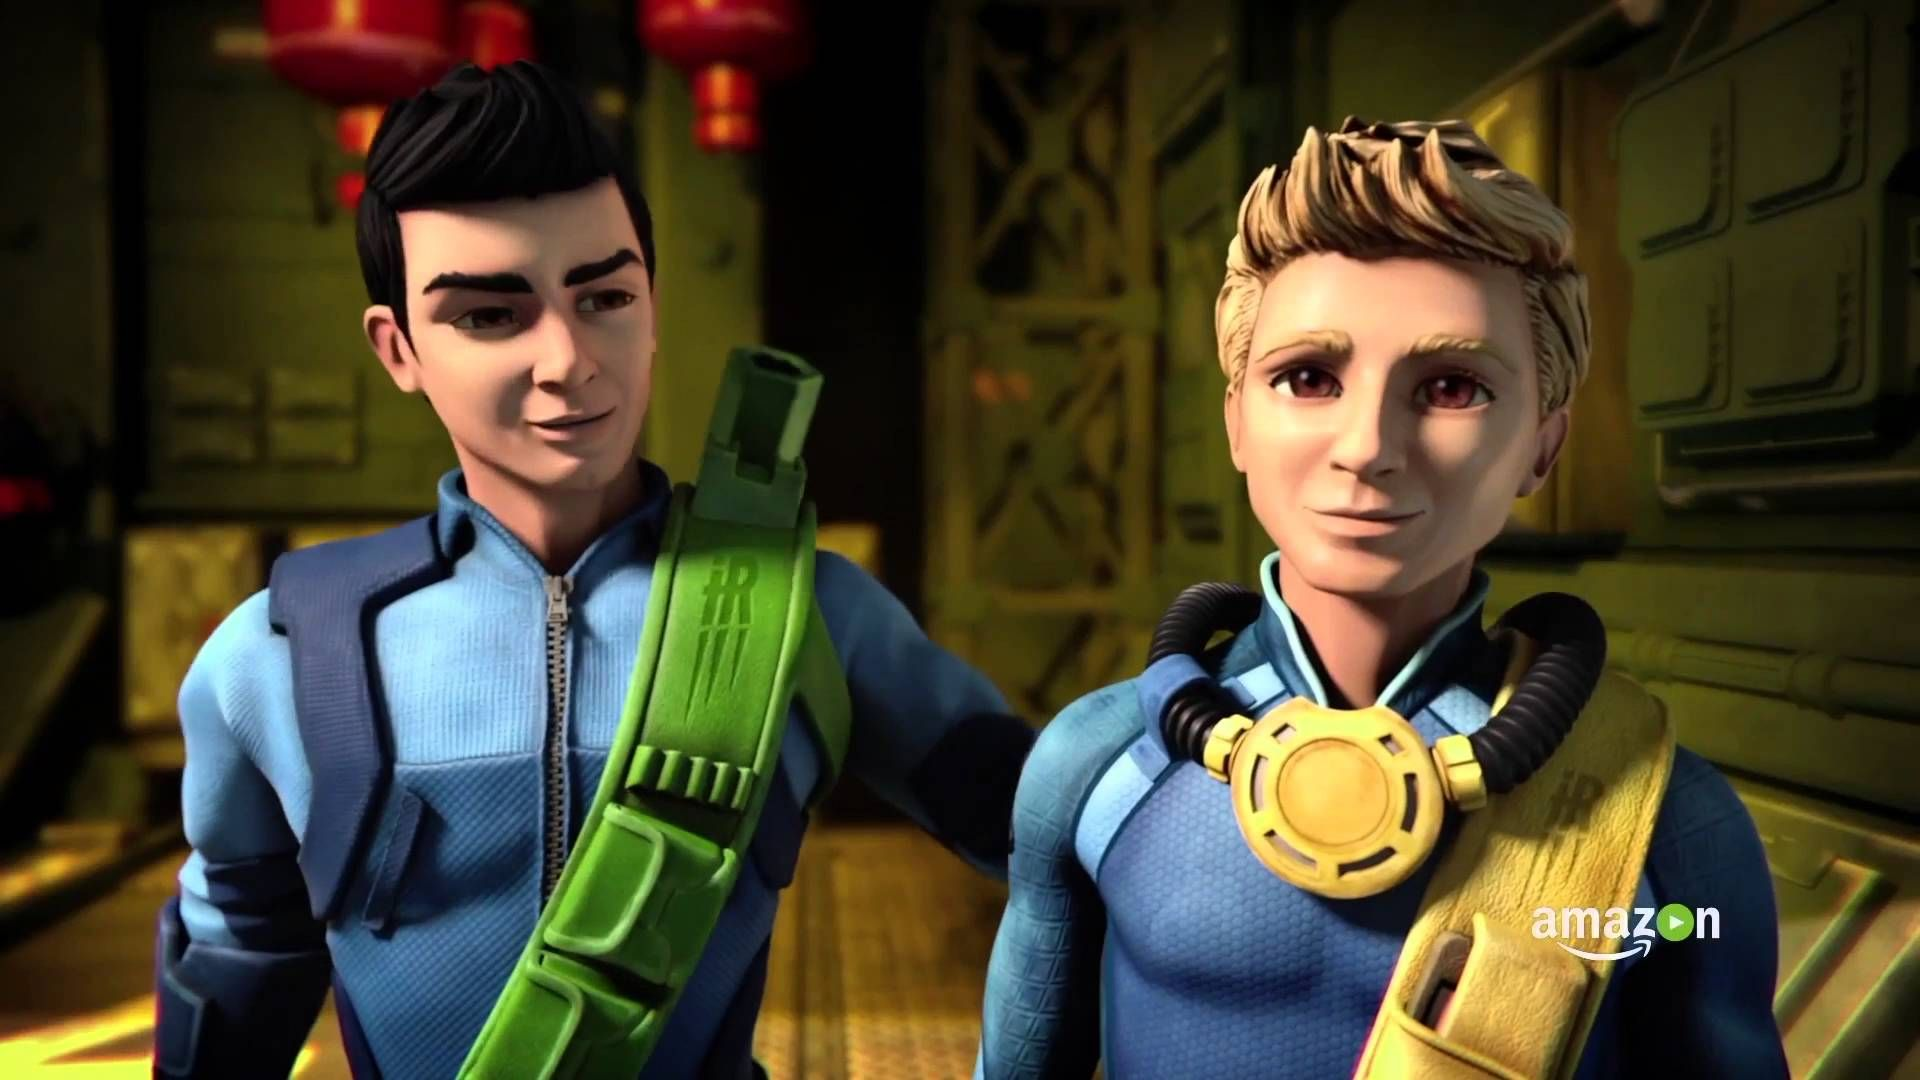 Irmg Thunderbirds Are Go Amazon Prime Launch Trailer With